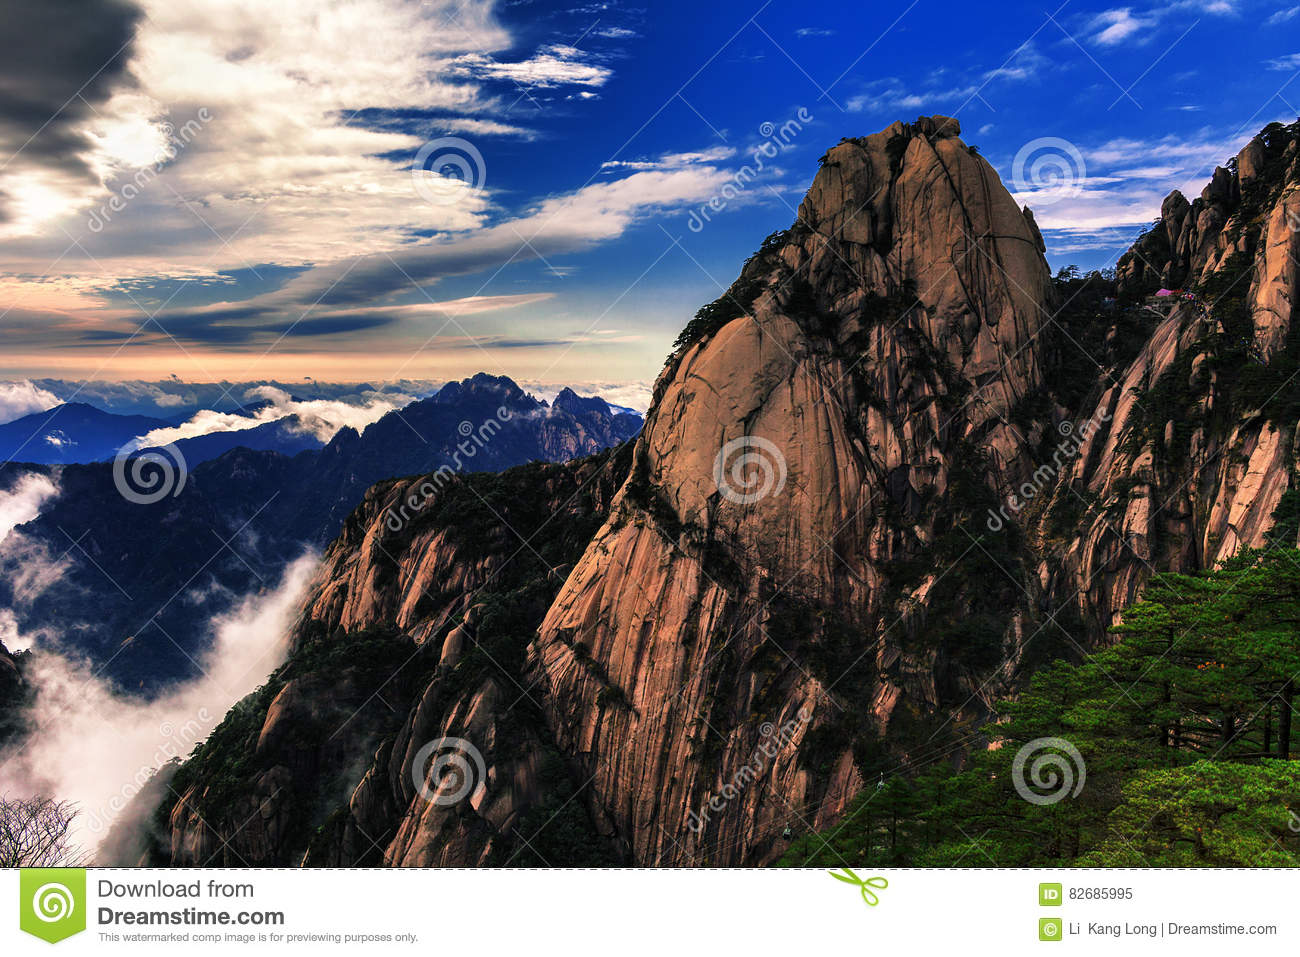 This is a famous tourist attraction in Huangshan, Anhui Province.